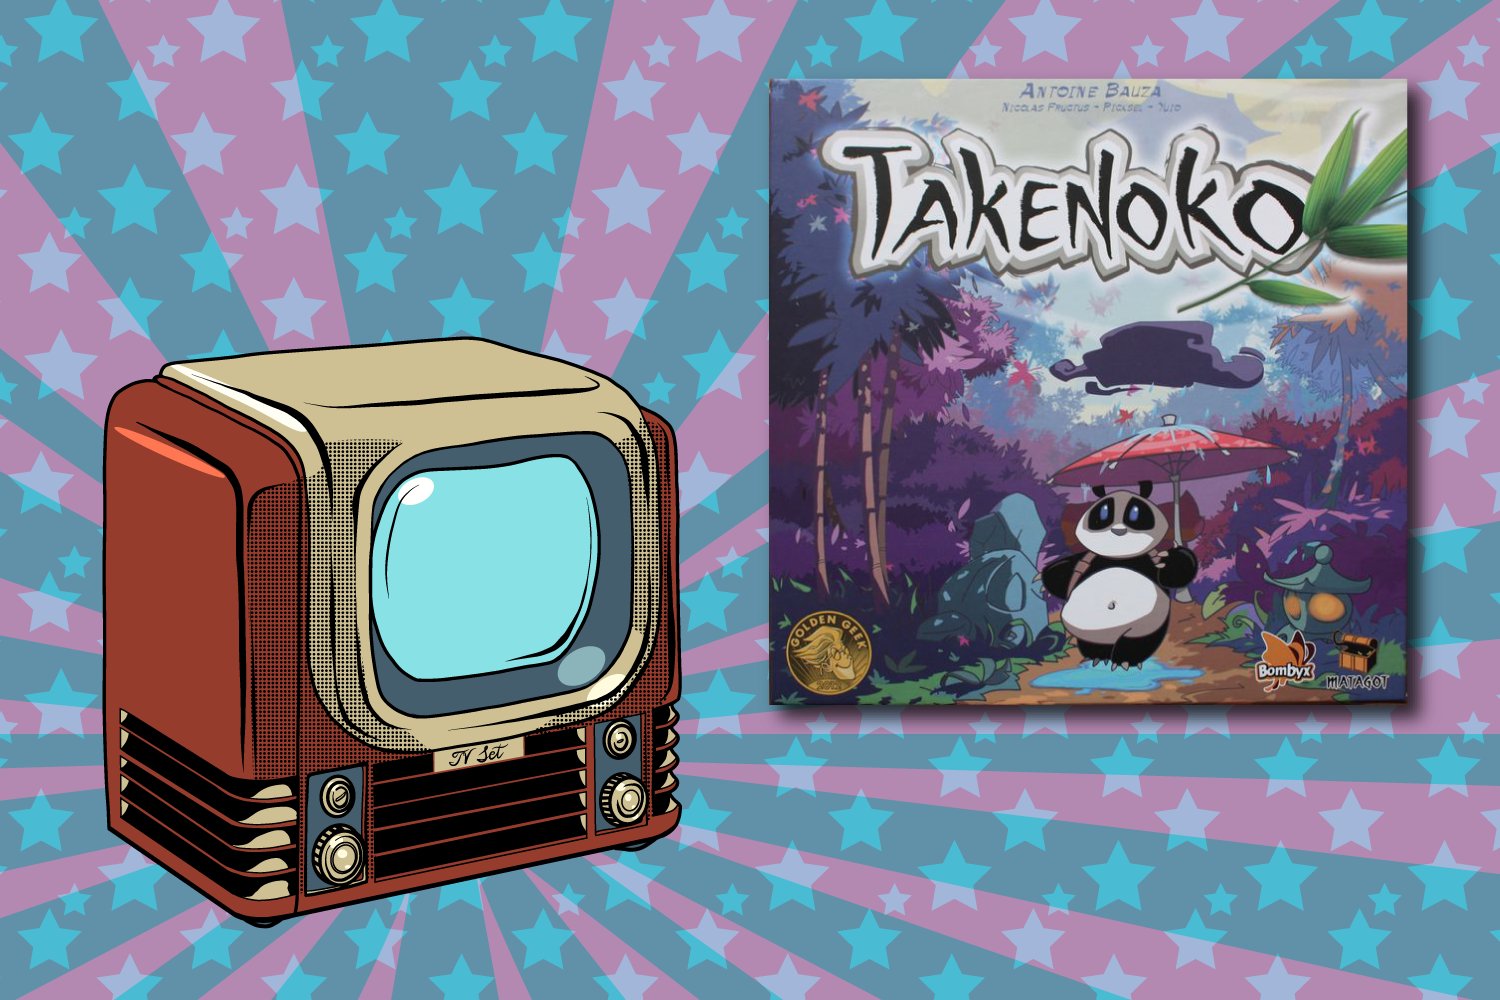 Takenoko-unboxing